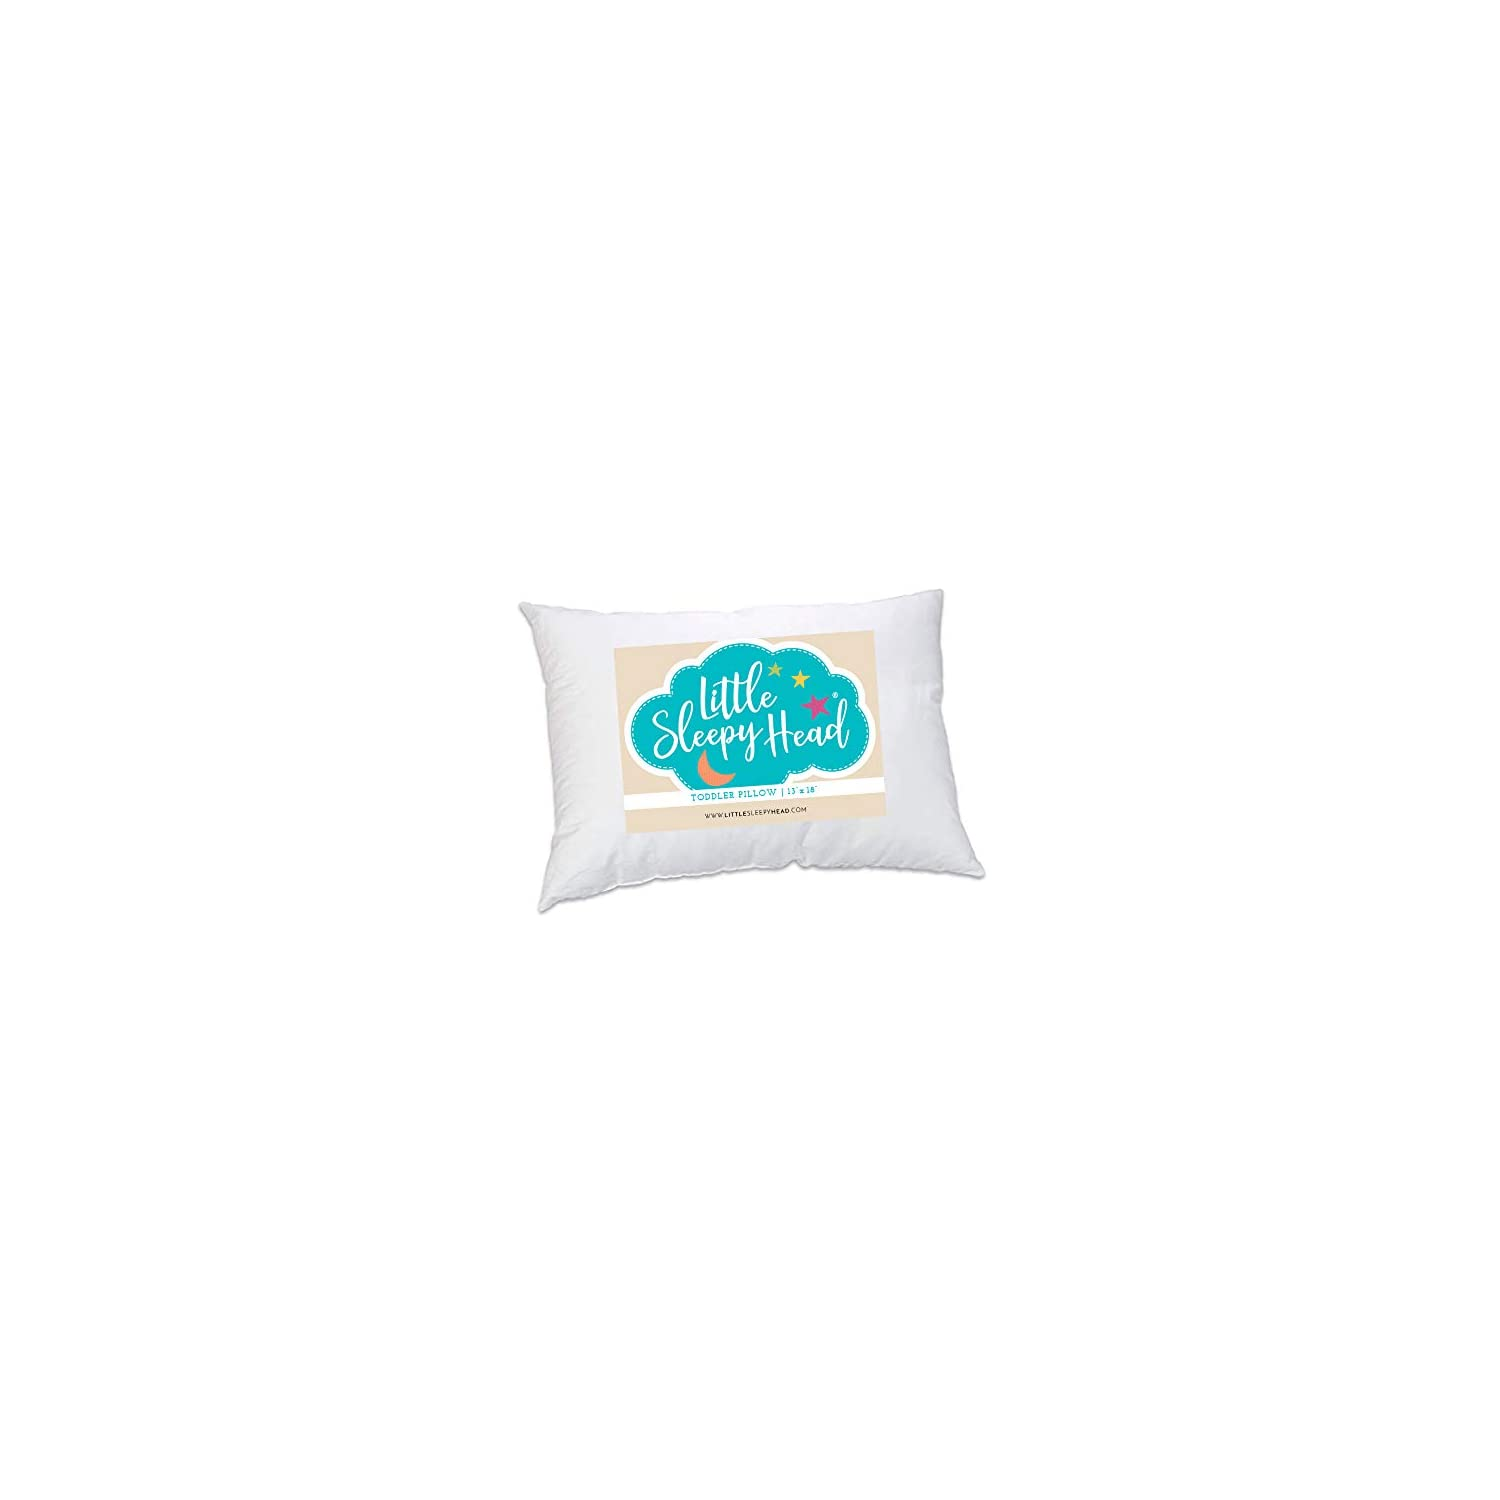 Toddler Pillow – Soft Hypoallergenic – Best Pillows for Kids! Better Neck Support and Sleeping! They Will Take a Better Nap in Bed, a Crib, or Even on the Floor at School! Makes Travel Comfier!